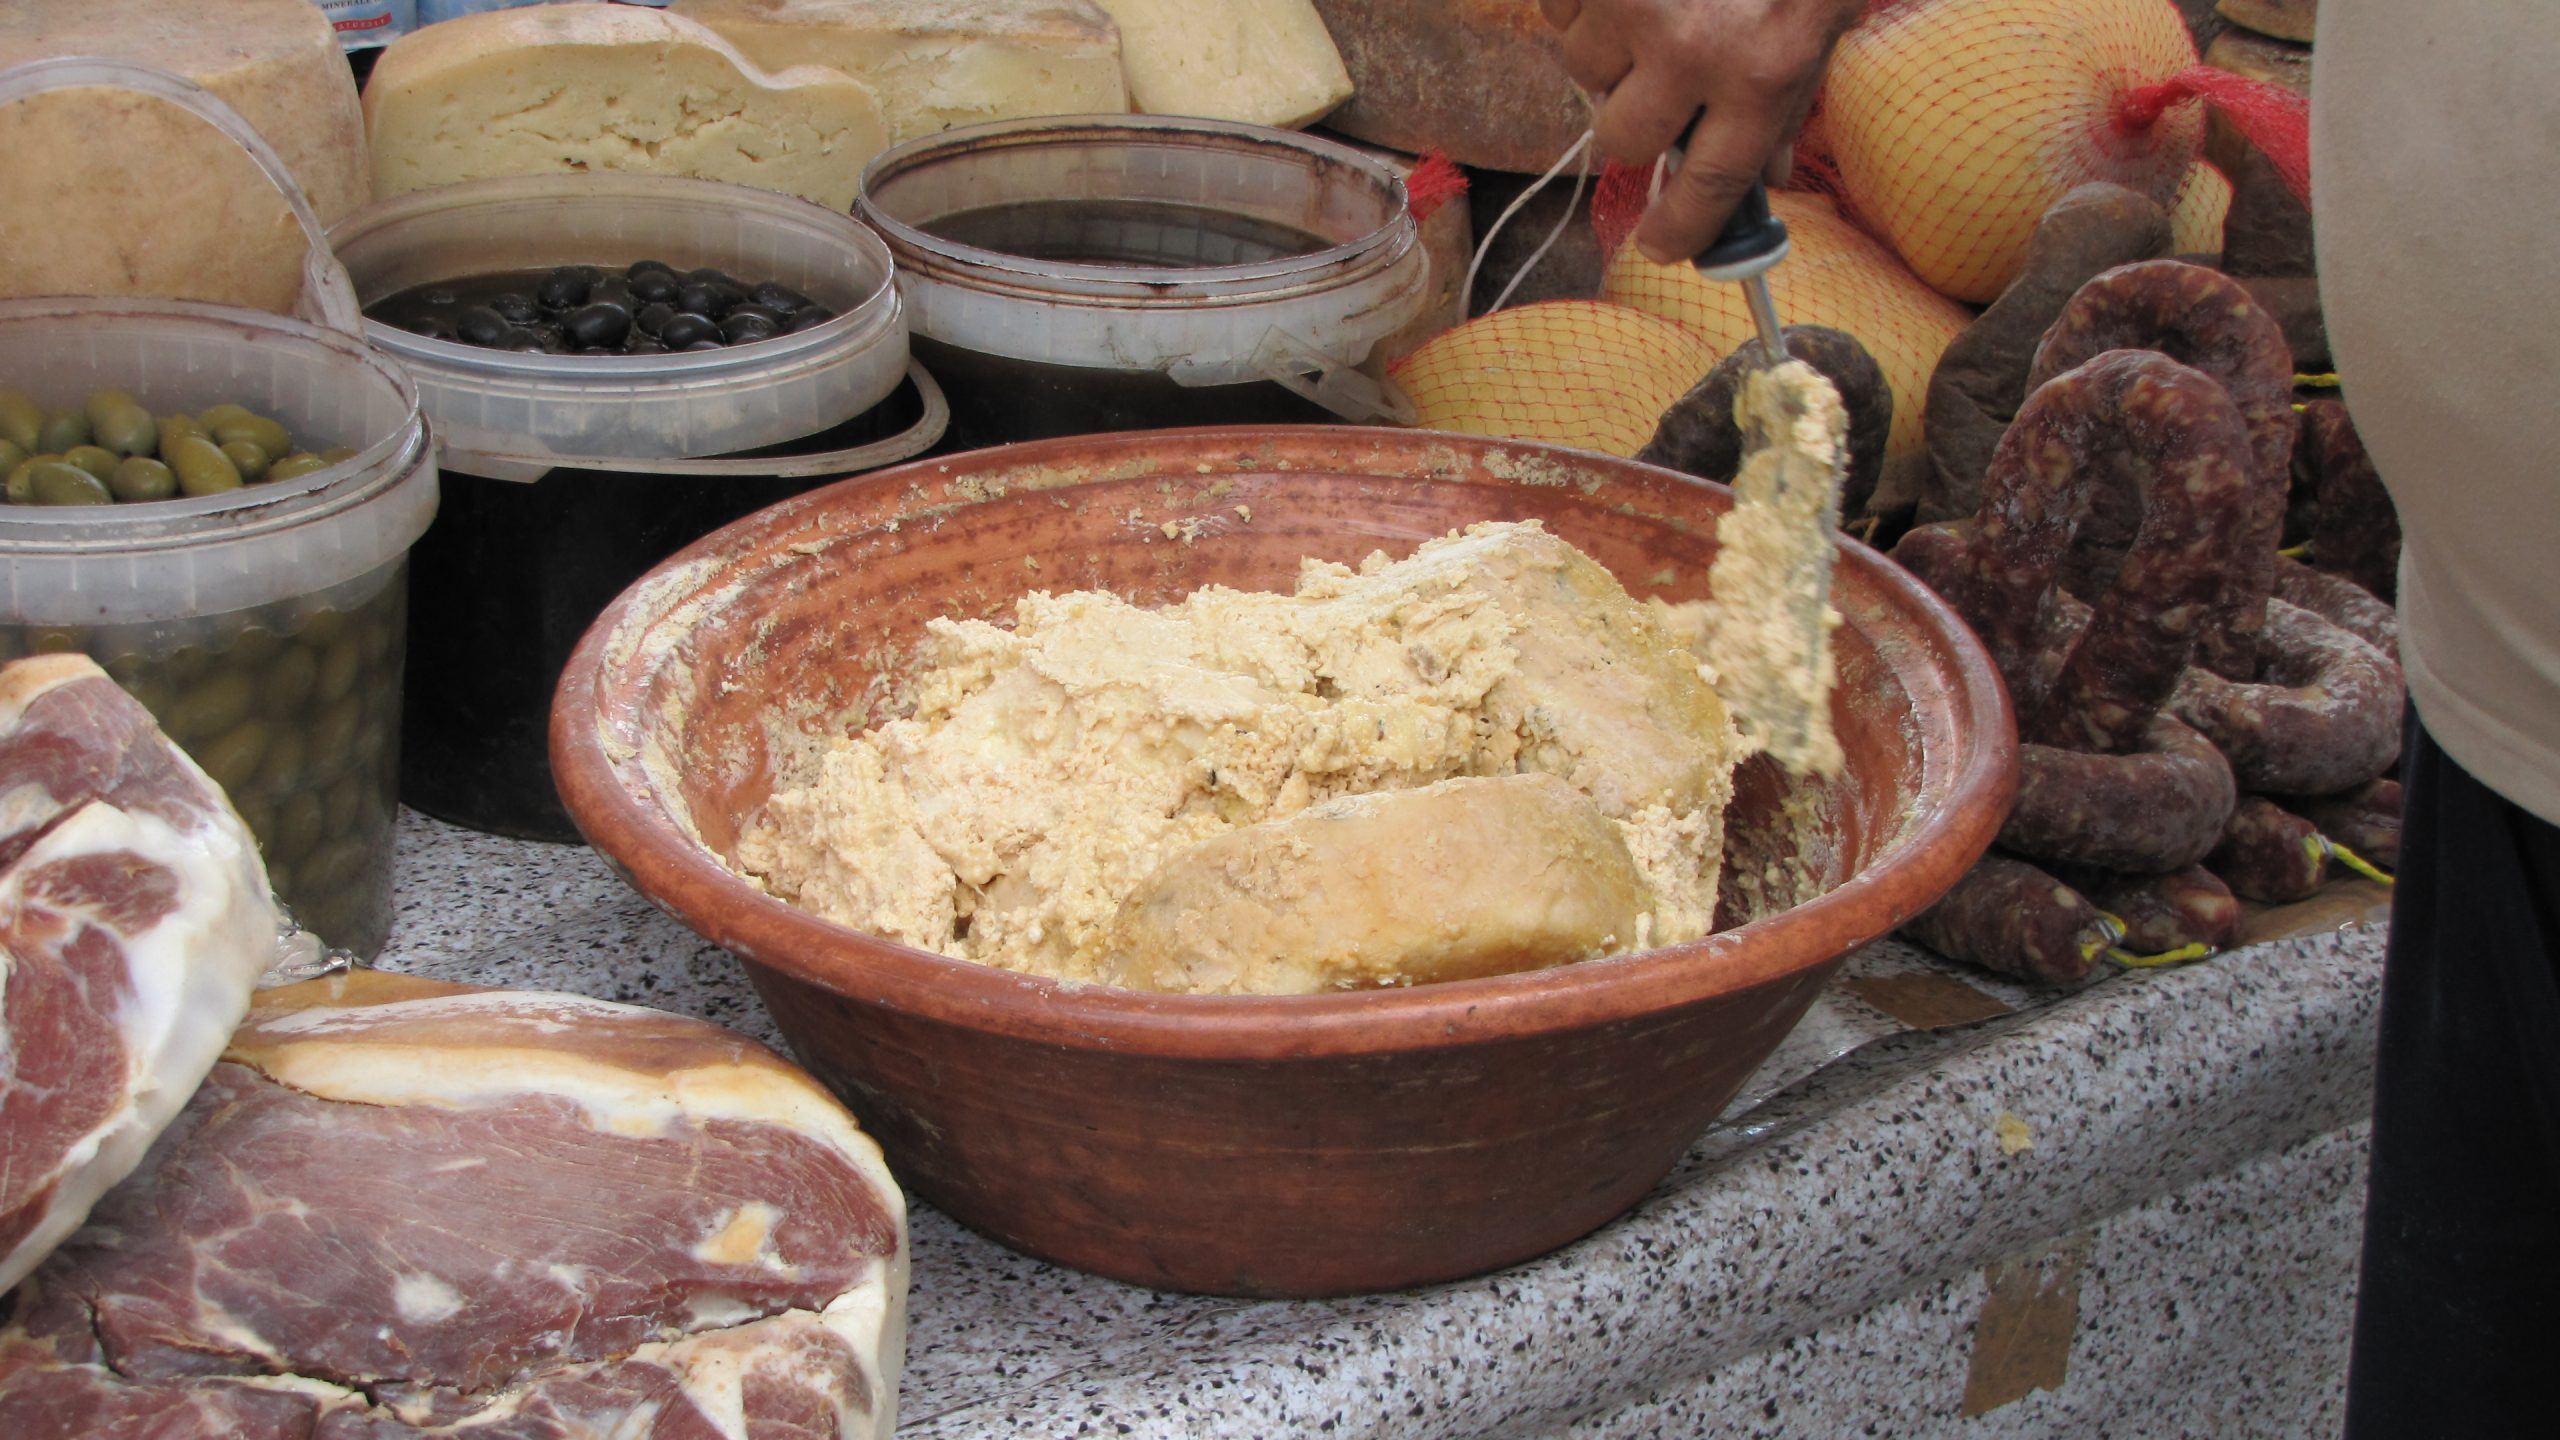 A brown ceramic bowl filled with casu marzu cheese surrounded by meats and buckets of olives